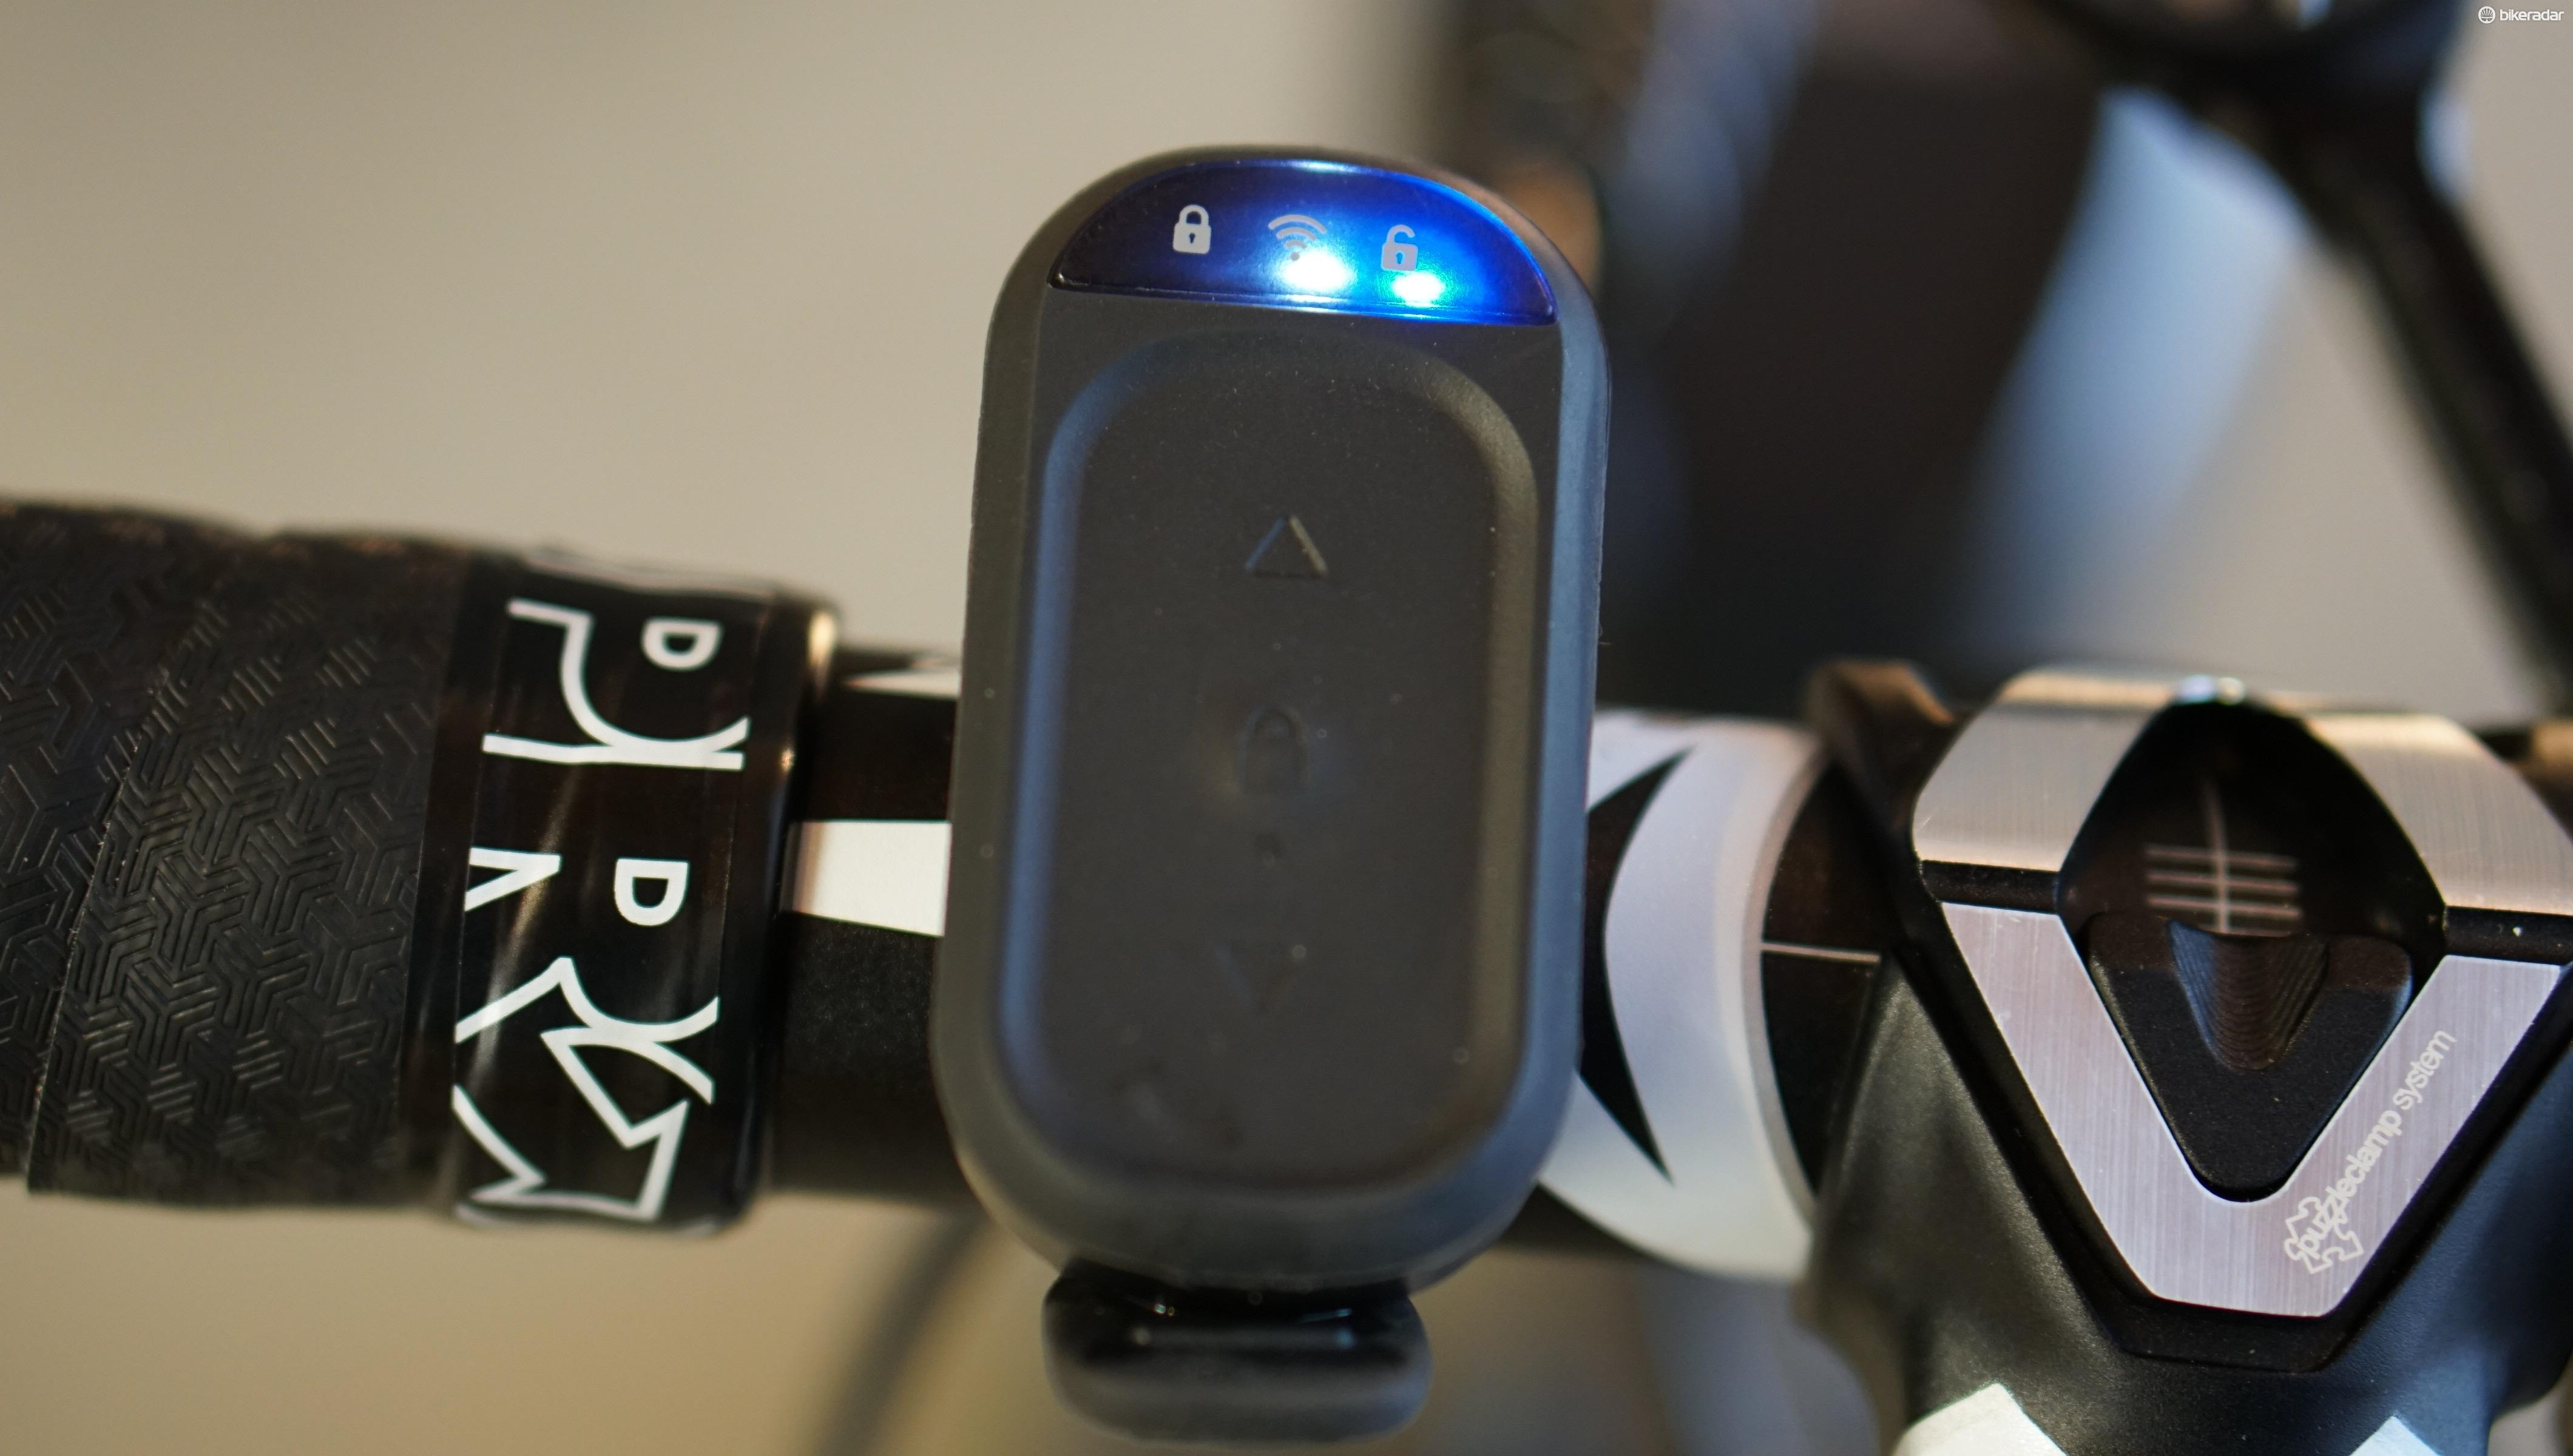 The remote toggles between unlocked (shown with blue light at right) to work with Zwift, TrainerRoad or other third-party apps, and locked (which is the unlit icon at left). The white light shows that the Climb is connected to a Kickr